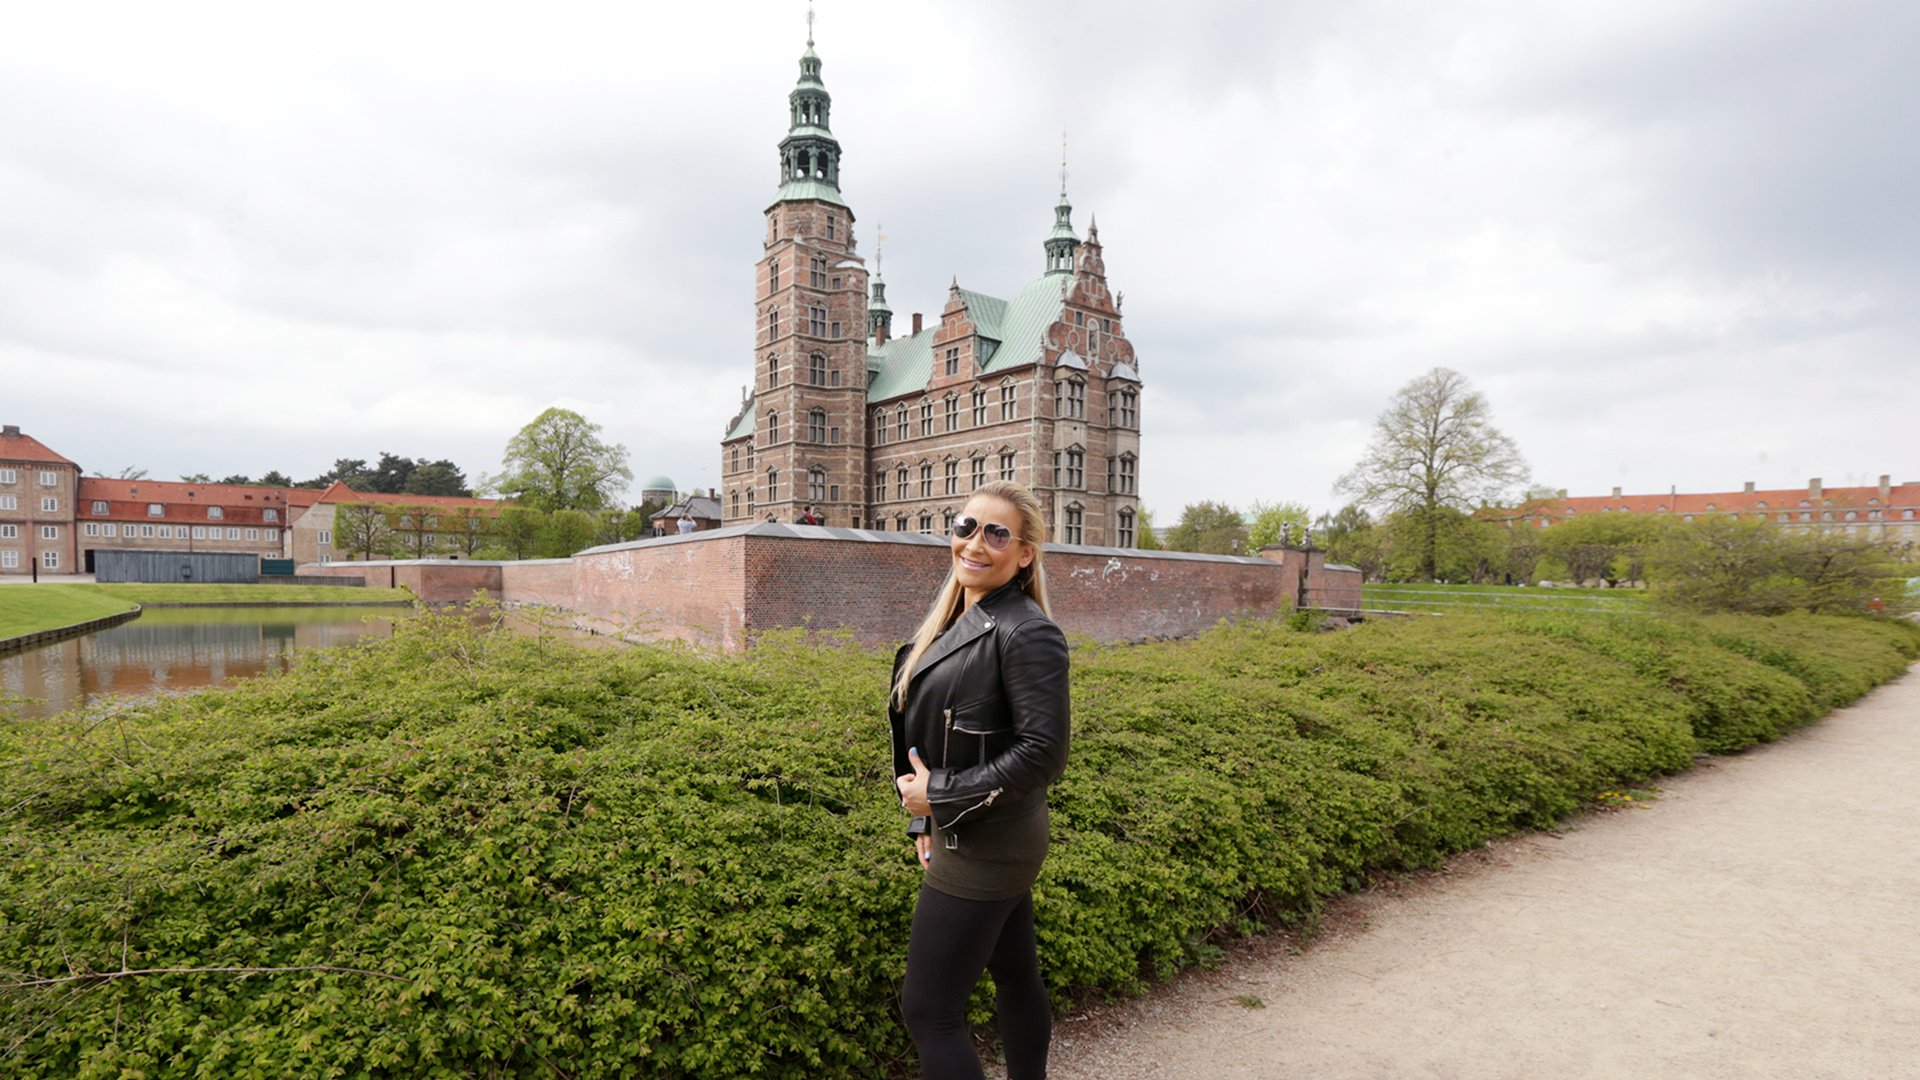 The Queen of Harts looks right at home in front of Rosenborg Castle.